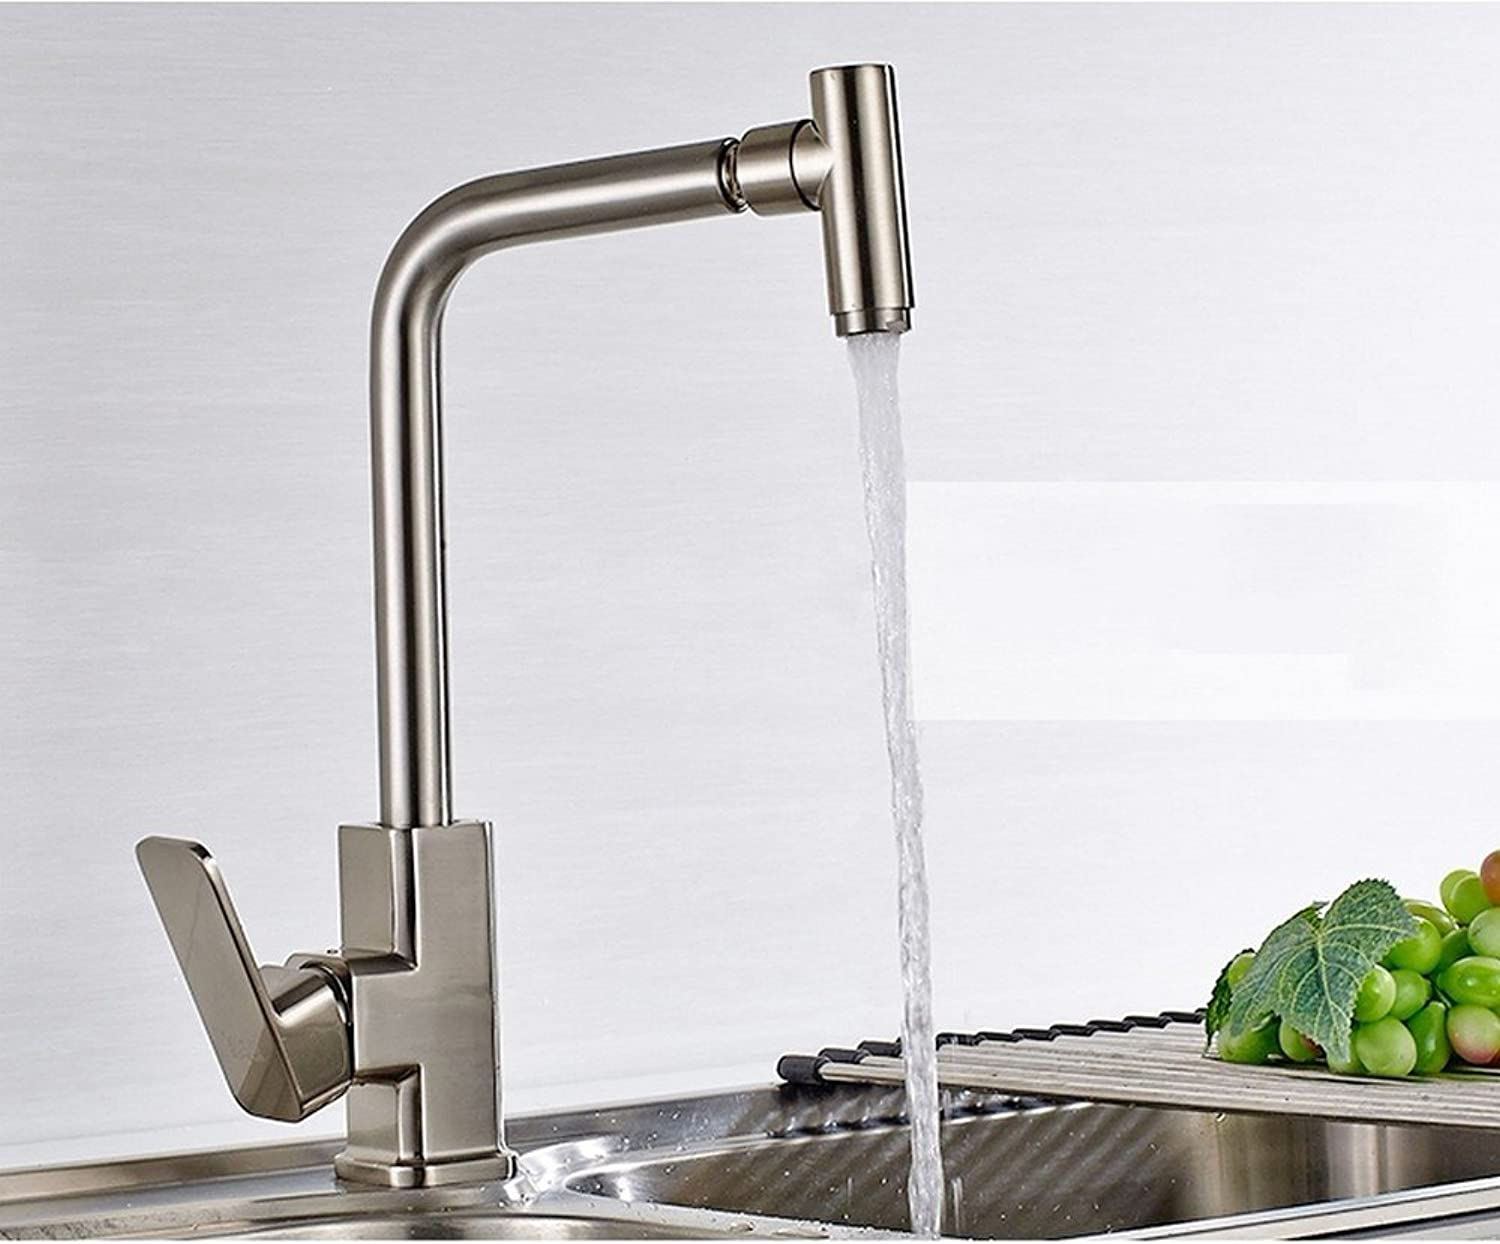 Rmckuva Kitchen Sink Taps Kitchen Faucet Modern 360 ° Swivel Kitchen Sink And Basin Single Handle Blender Brass Mixer Brushed Curled Stainless Steel Ss304